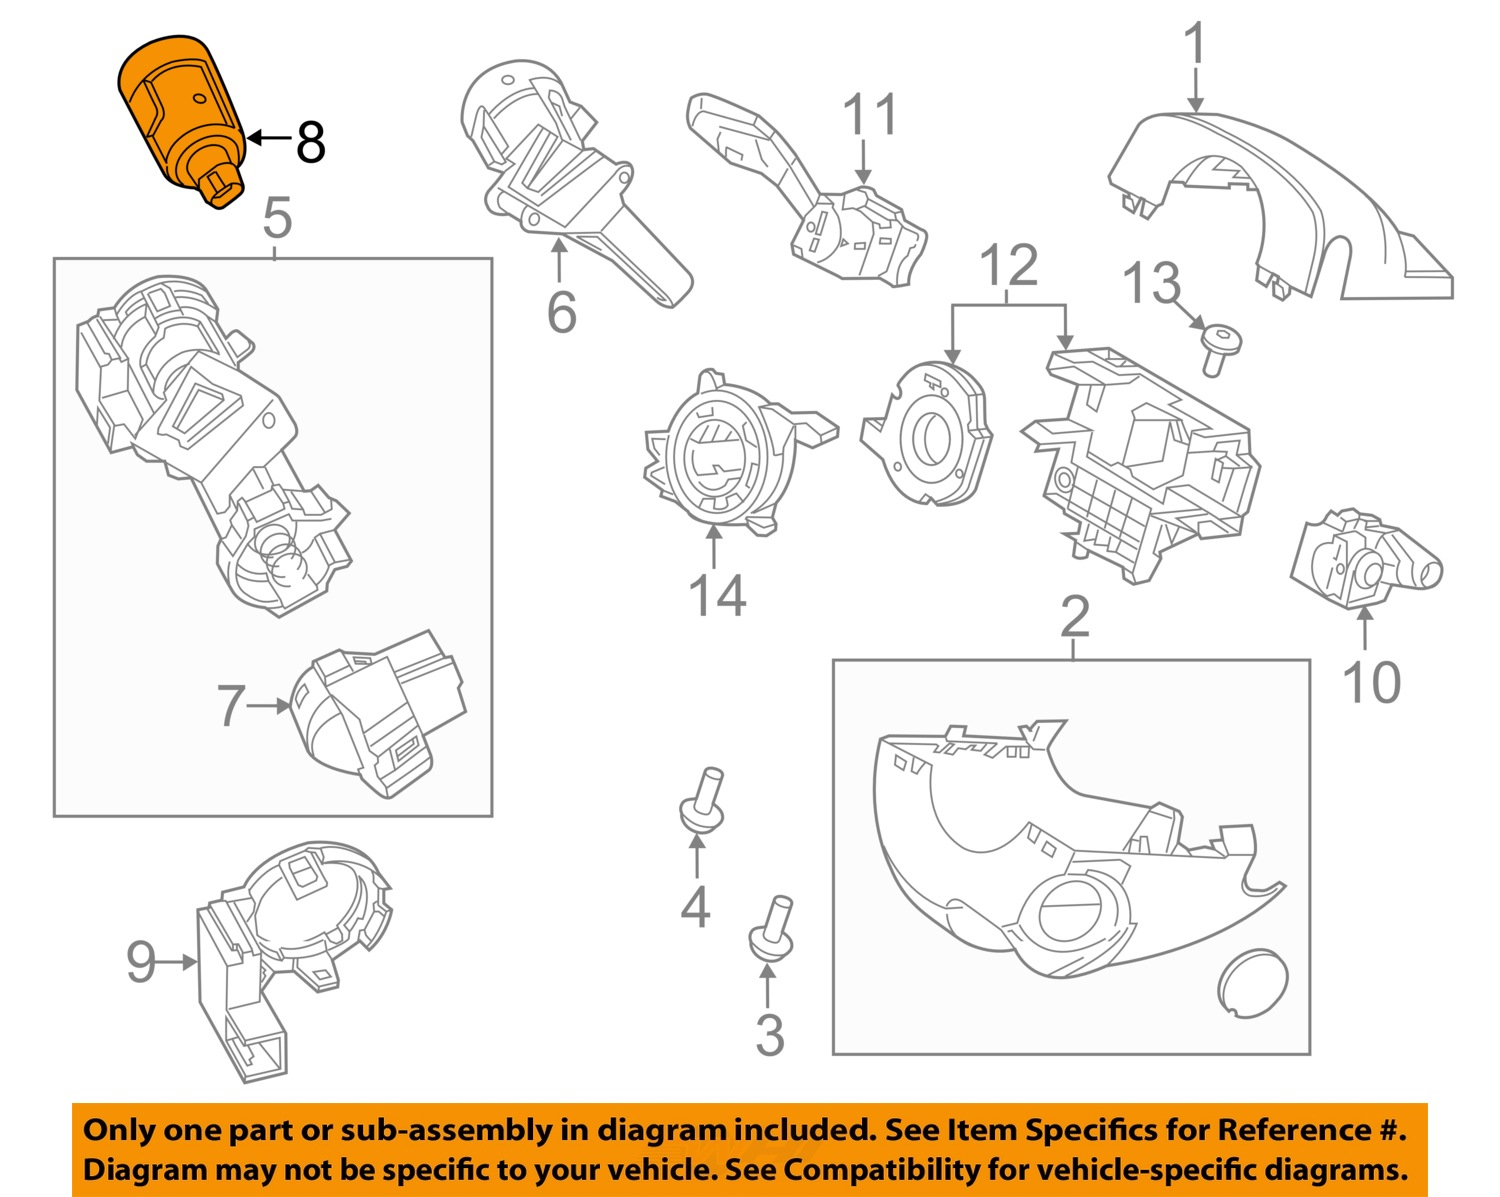 Ford Focus Ignition Coil Diagram Trusted Wiring Diagrams 01 Zx3 Wire Cylinder Data U2022 X 1996 Switch